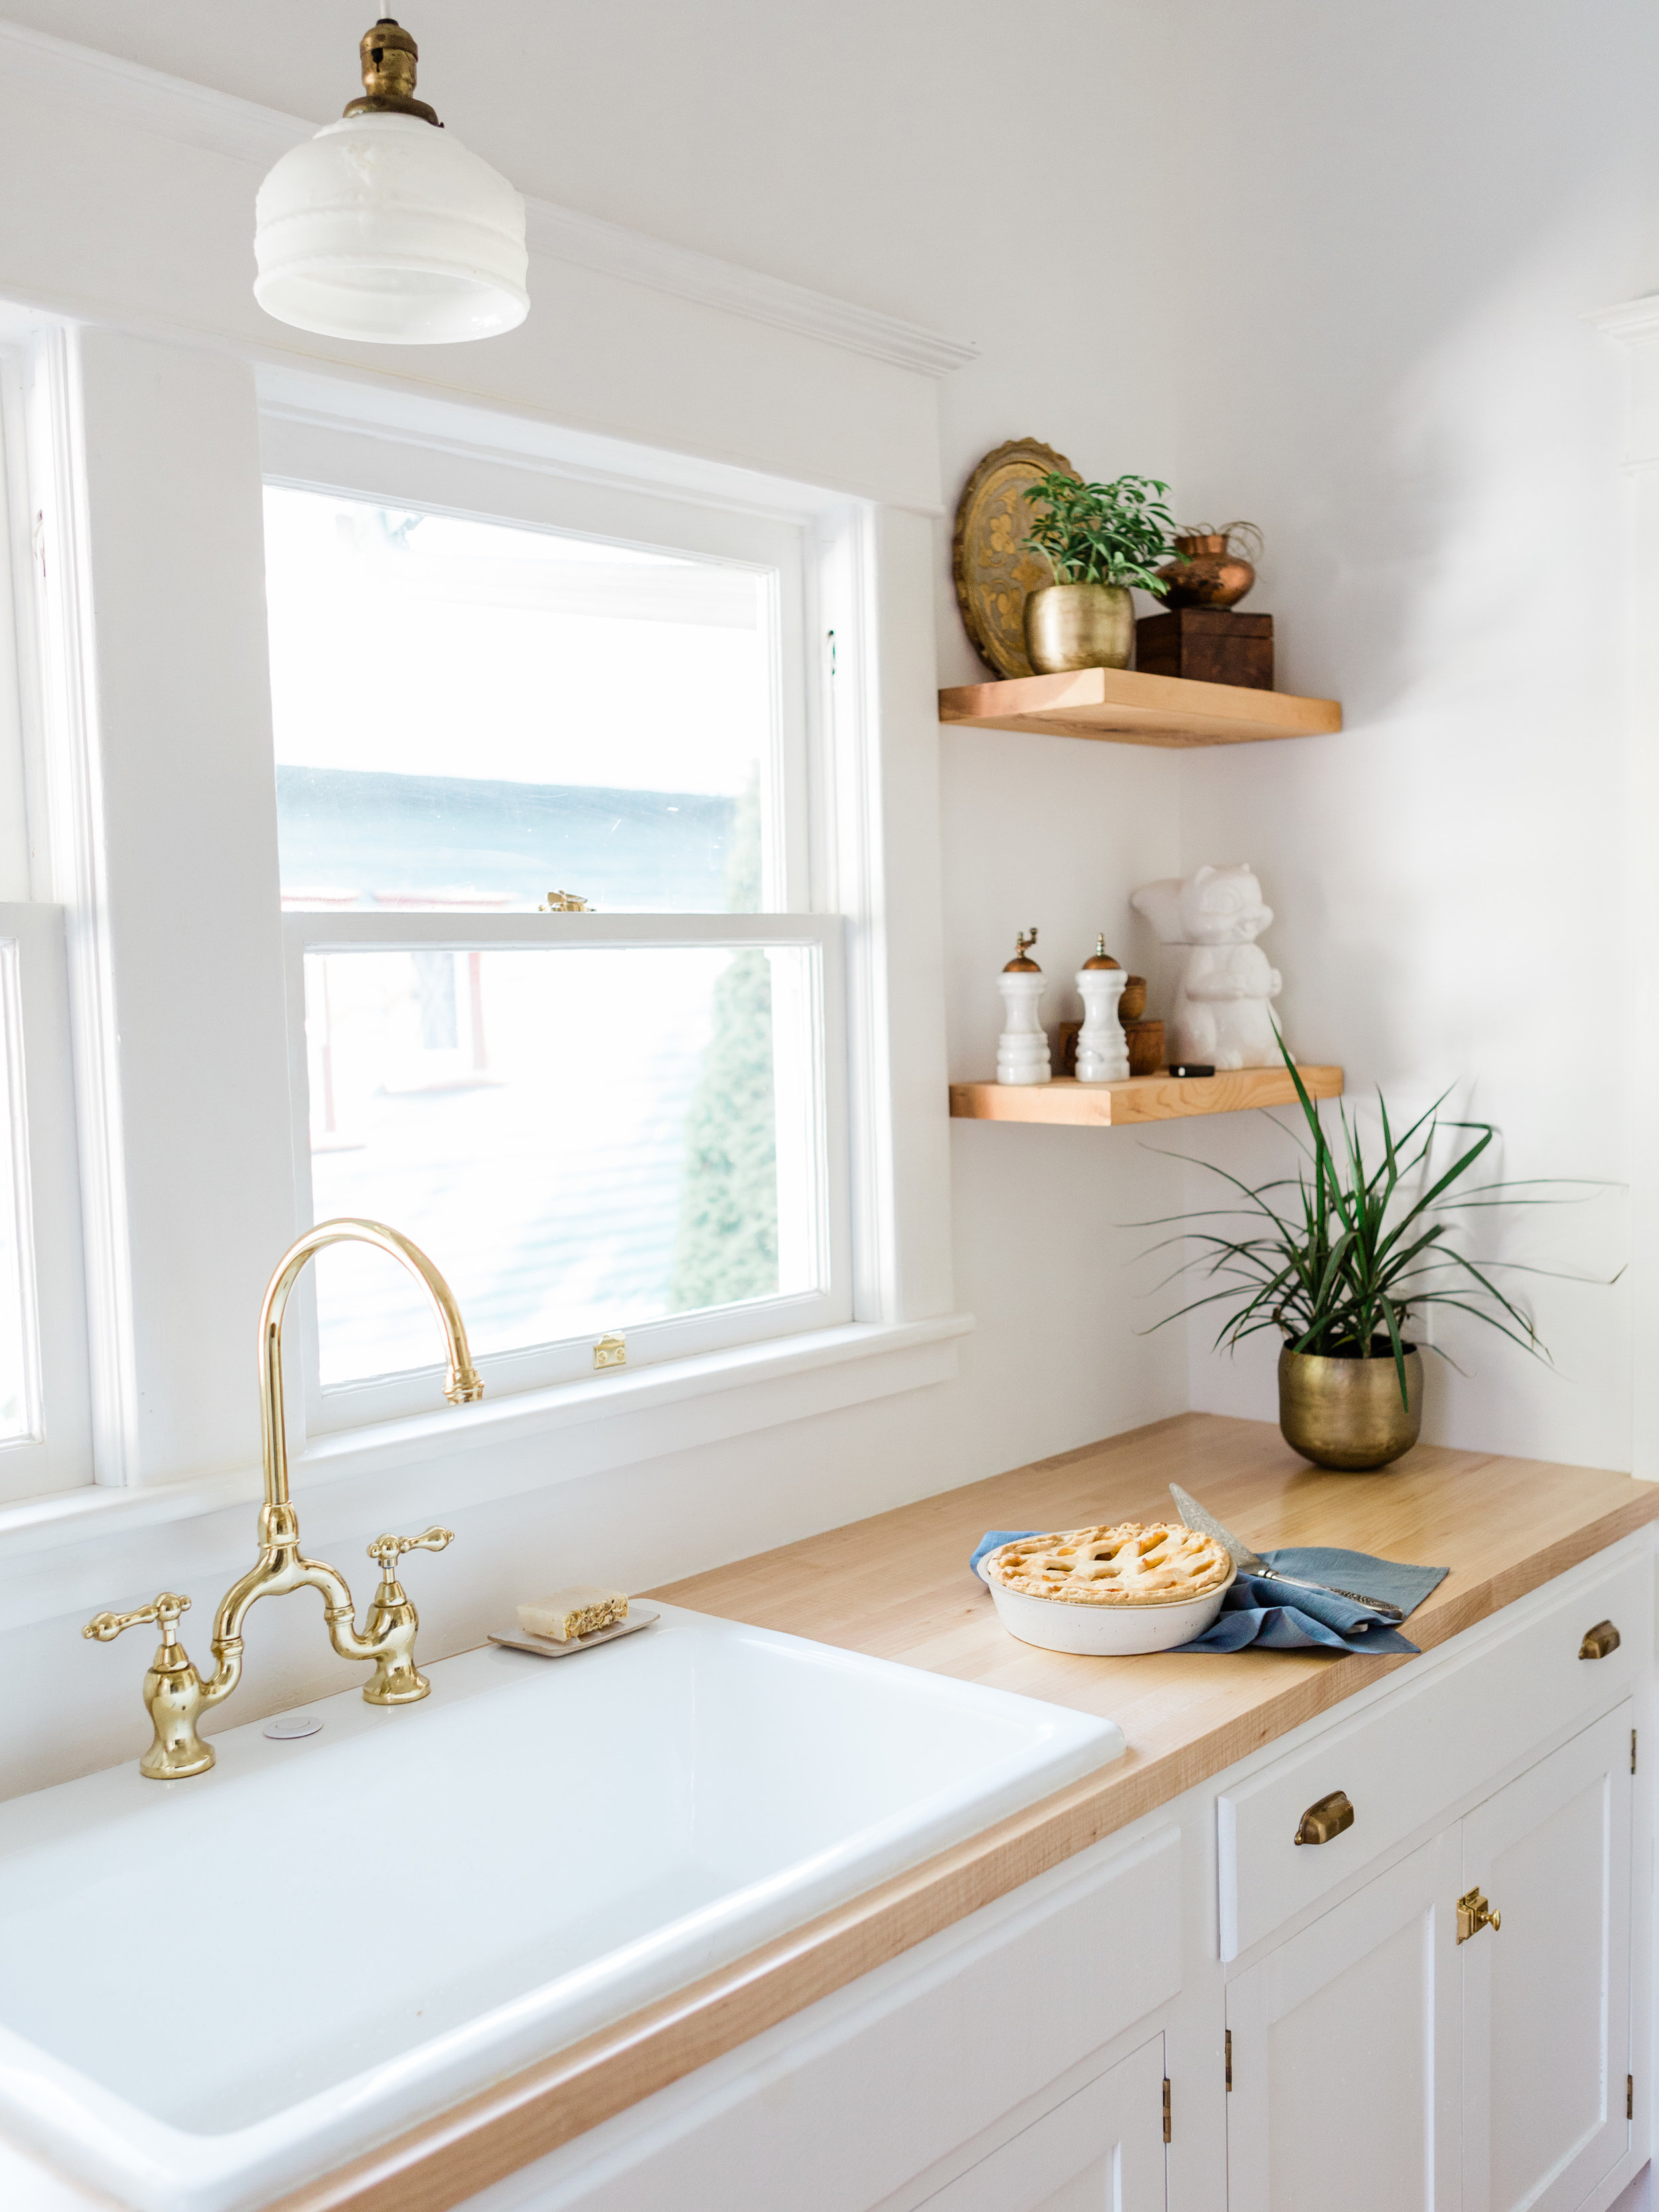 all white kitchen butcher block counters at foragedhome.com